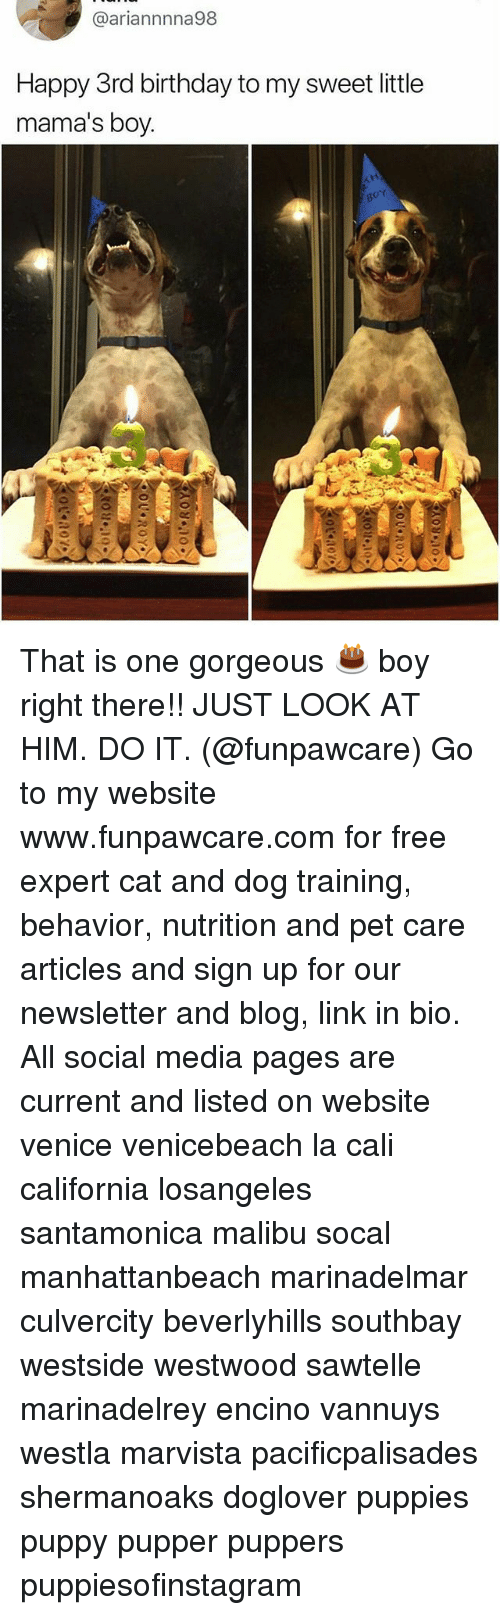 Birthday, Memes, and Puppies: @ariannnna98  Happy 3rd birthday to my sweet little  mama's boy. That is one gorgeous 🎂 boy right there!! JUST LOOK AT HIM. DO IT. (@funpawcare) Go to my website www.funpawcare.com for free expert cat and dog training, behavior, nutrition and pet care articles and sign up for our newsletter and blog, link in bio. All social media pages are current and listed on website venice venicebeach la cali california losangeles santamonica malibu socal manhattanbeach marinadelmar culvercity beverlyhills southbay westside westwood sawtelle marinadelrey encino vannuys westla marvista pacificpalisades shermanoaks doglover puppies puppy pupper puppers puppiesofinstagram